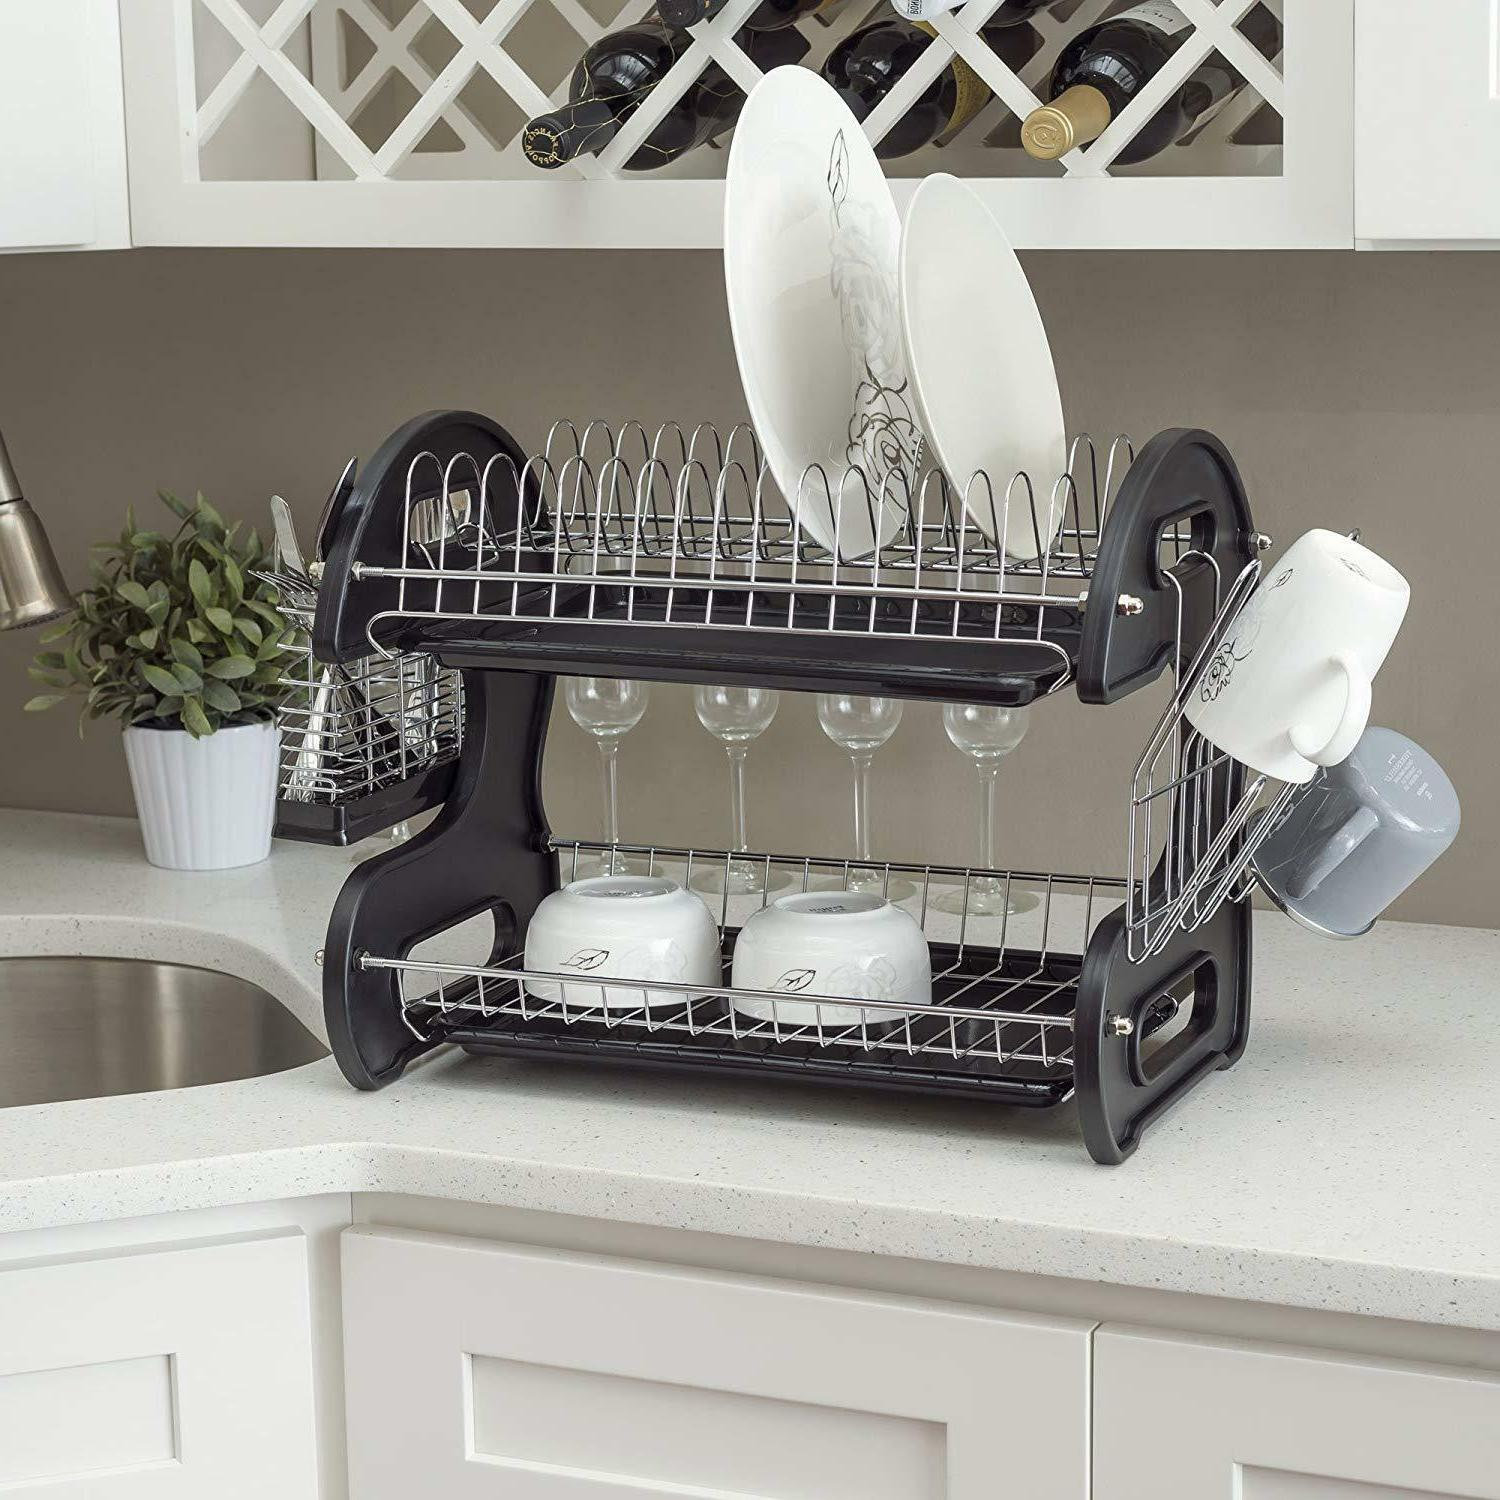 New Dish Drainer 2-Tier Turquoise / Black